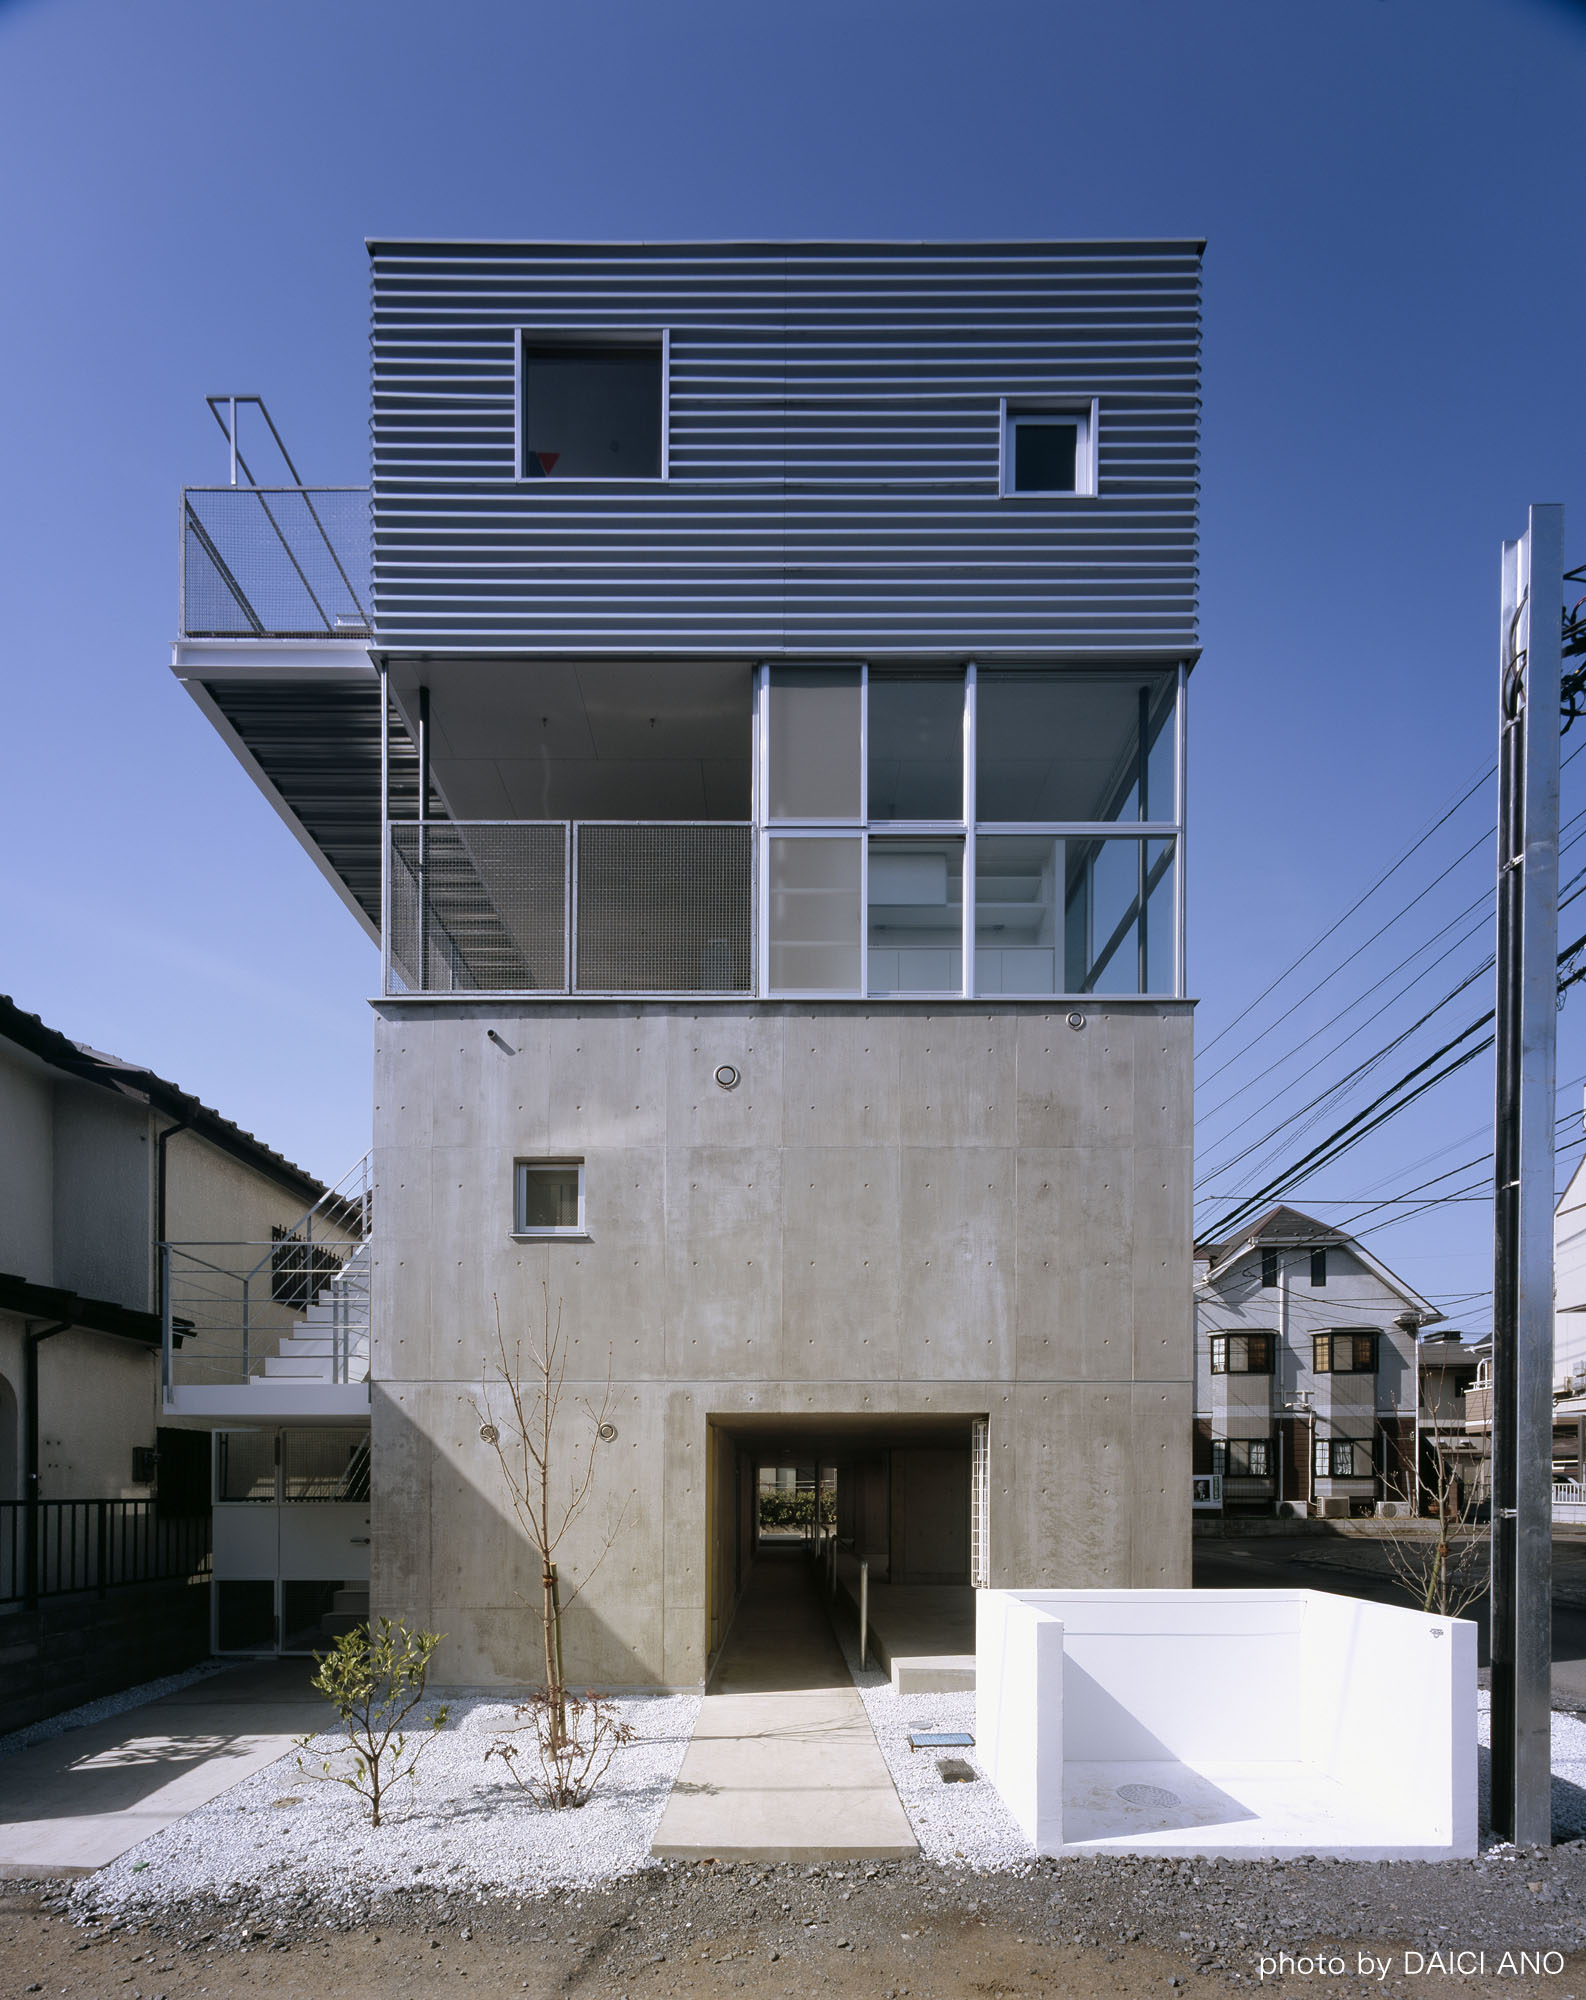 Kobuchi Apartment / Toru Kudo + architecture WORKSHOP, © Daici Ano